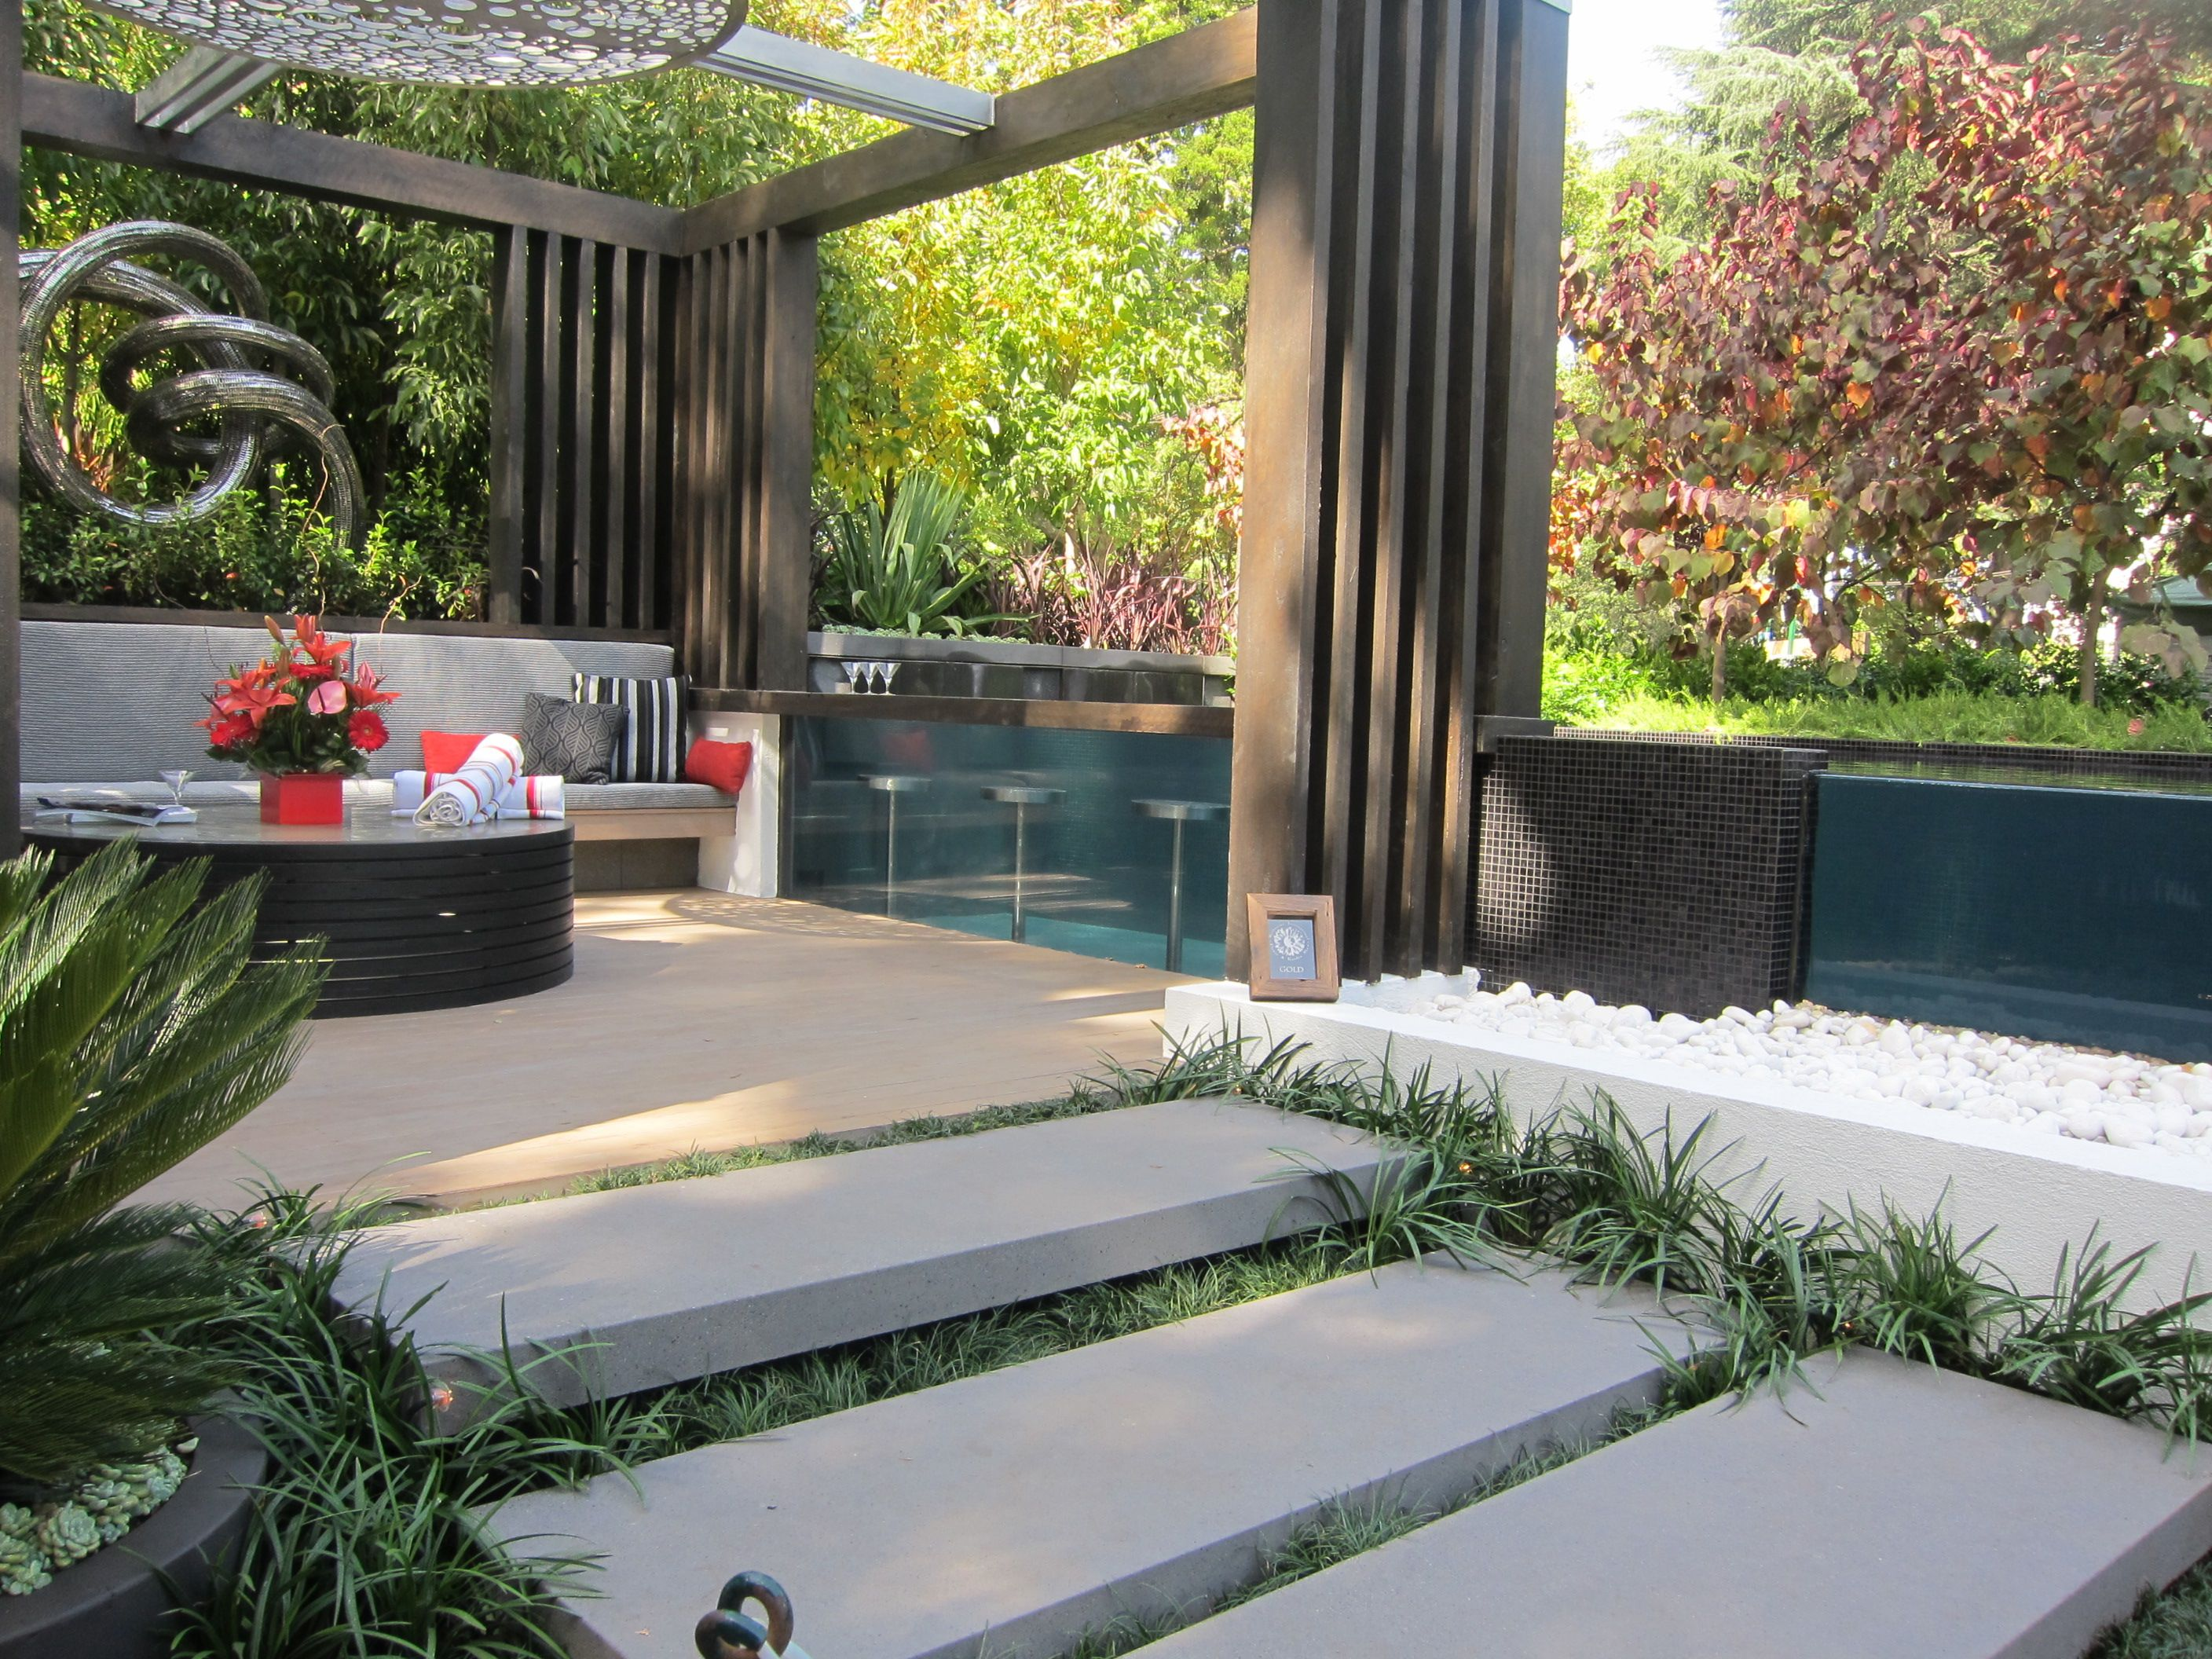 Pools In Small Backyards Outdoor Kitchen Designs Landscaping Ideas For Landscape  Design Australia Good Dining Sets